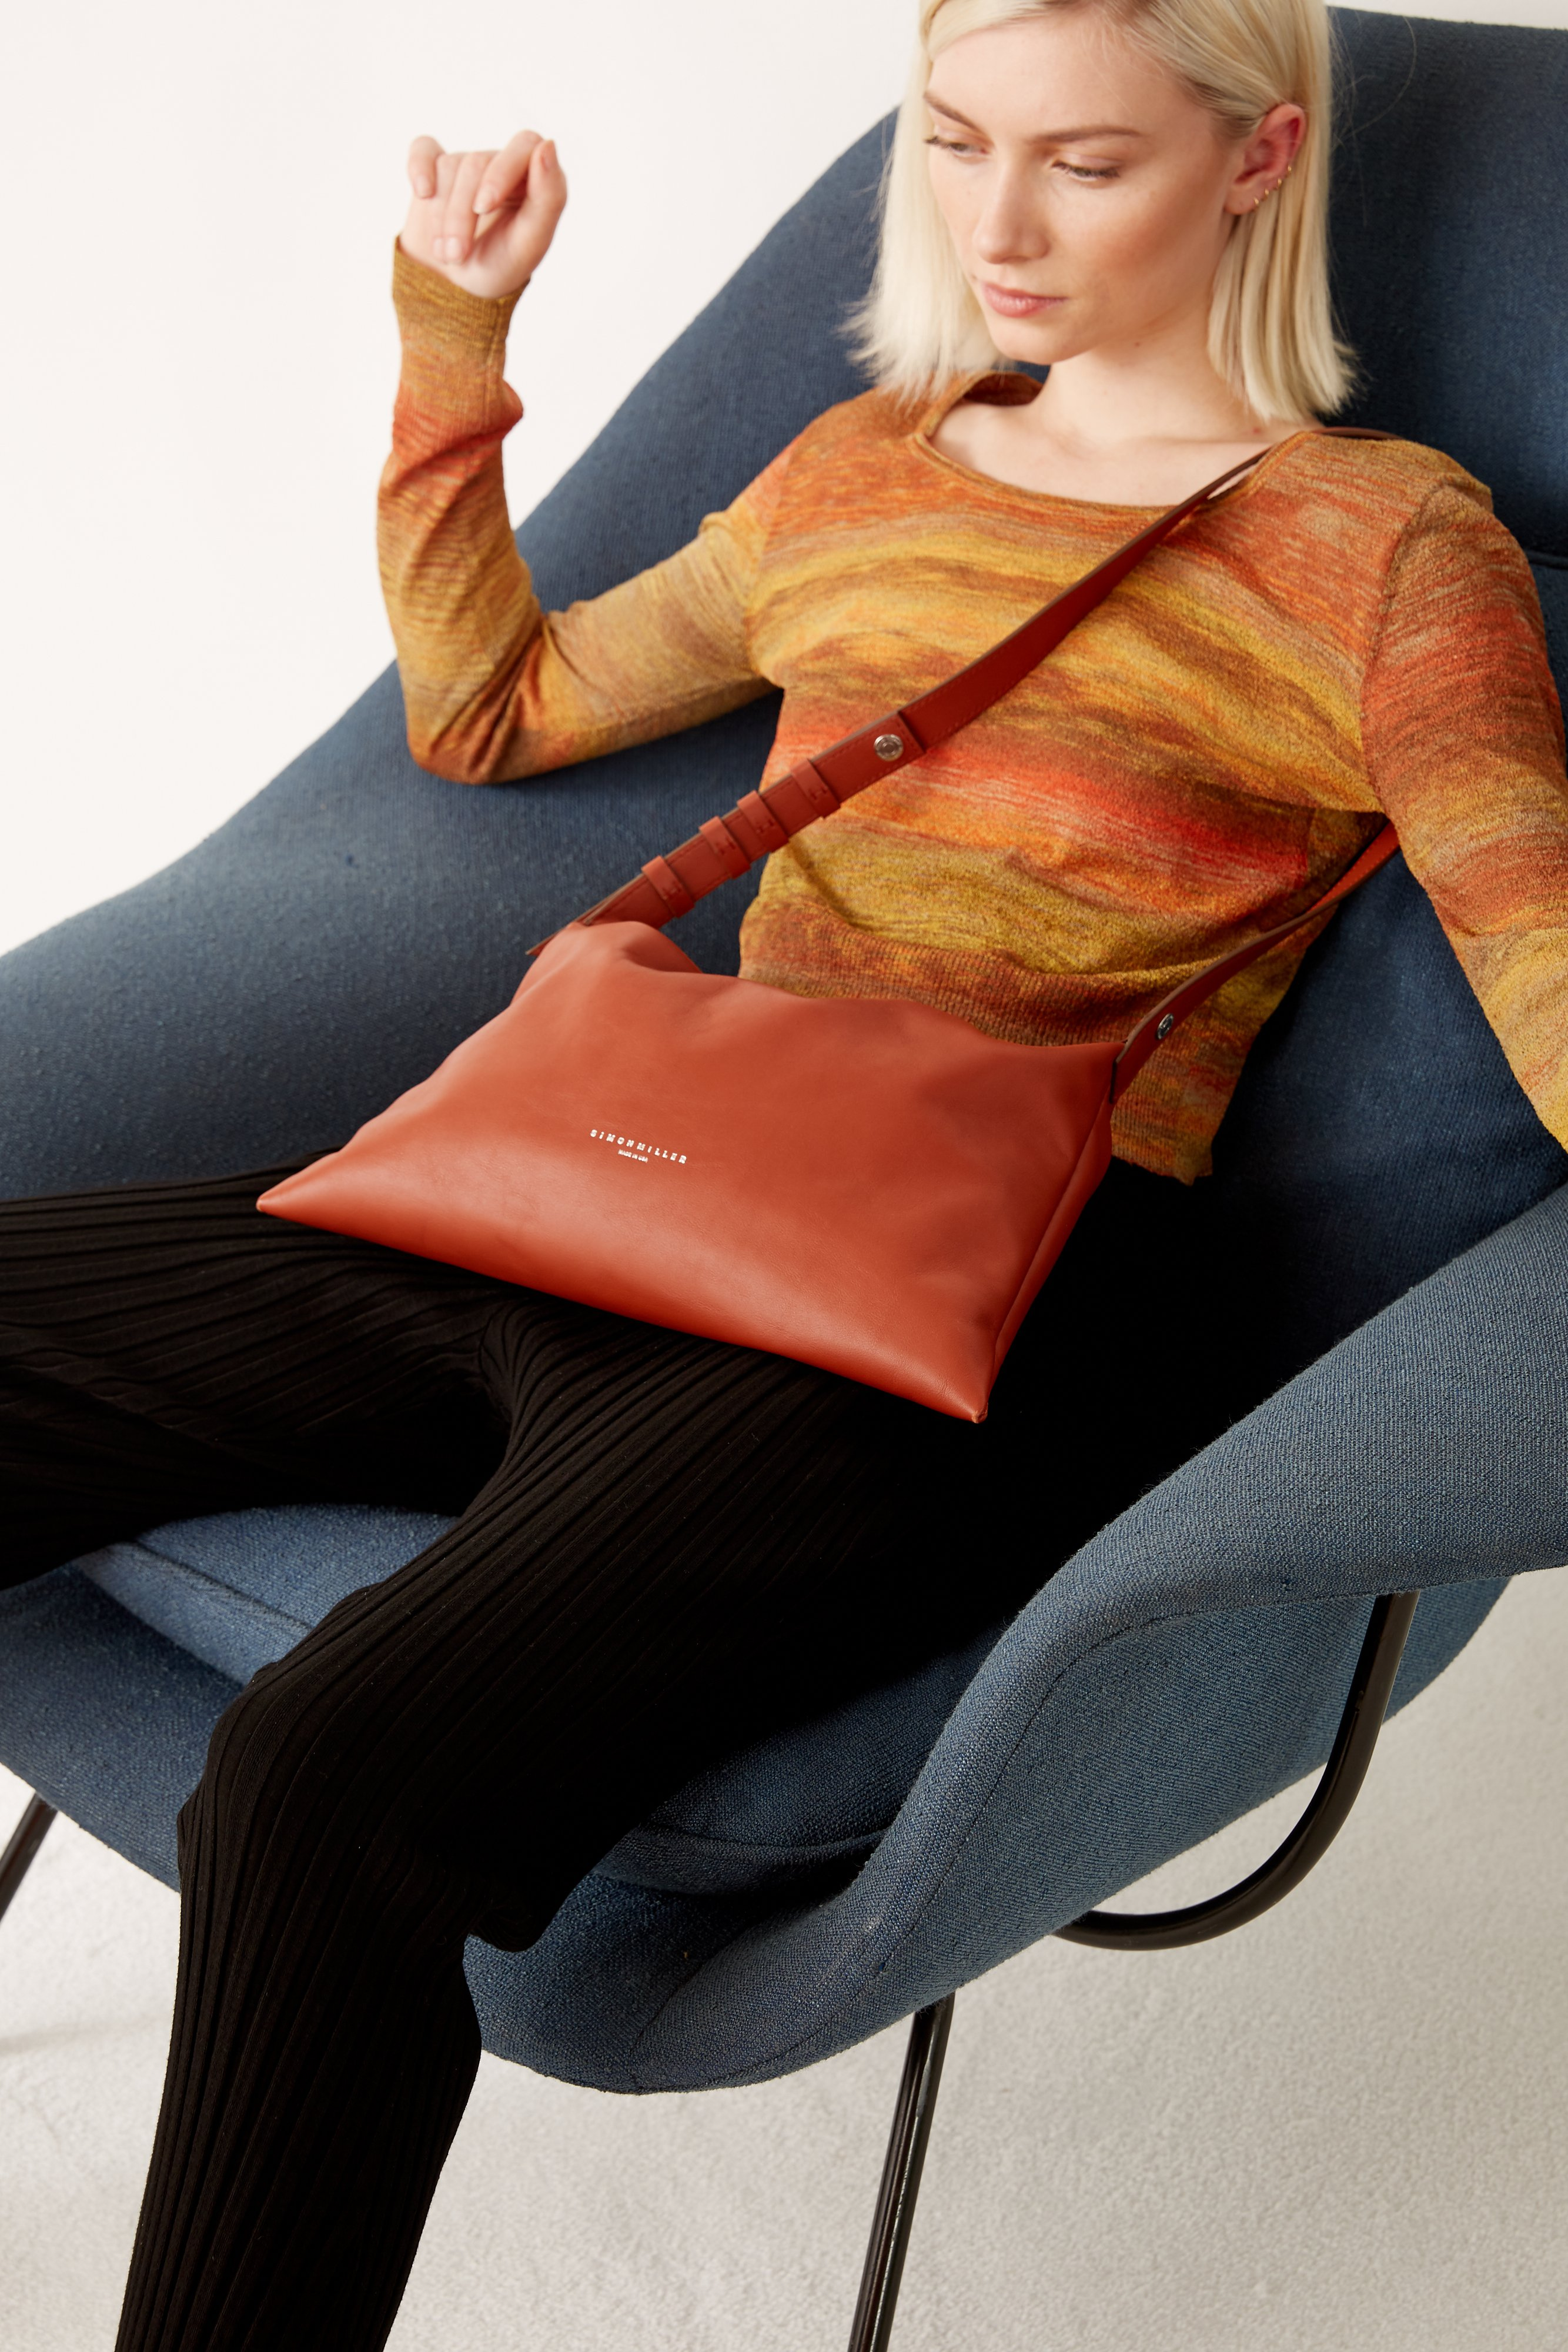 Puffin Bag in Sepia Brown by Simon Miller - 2